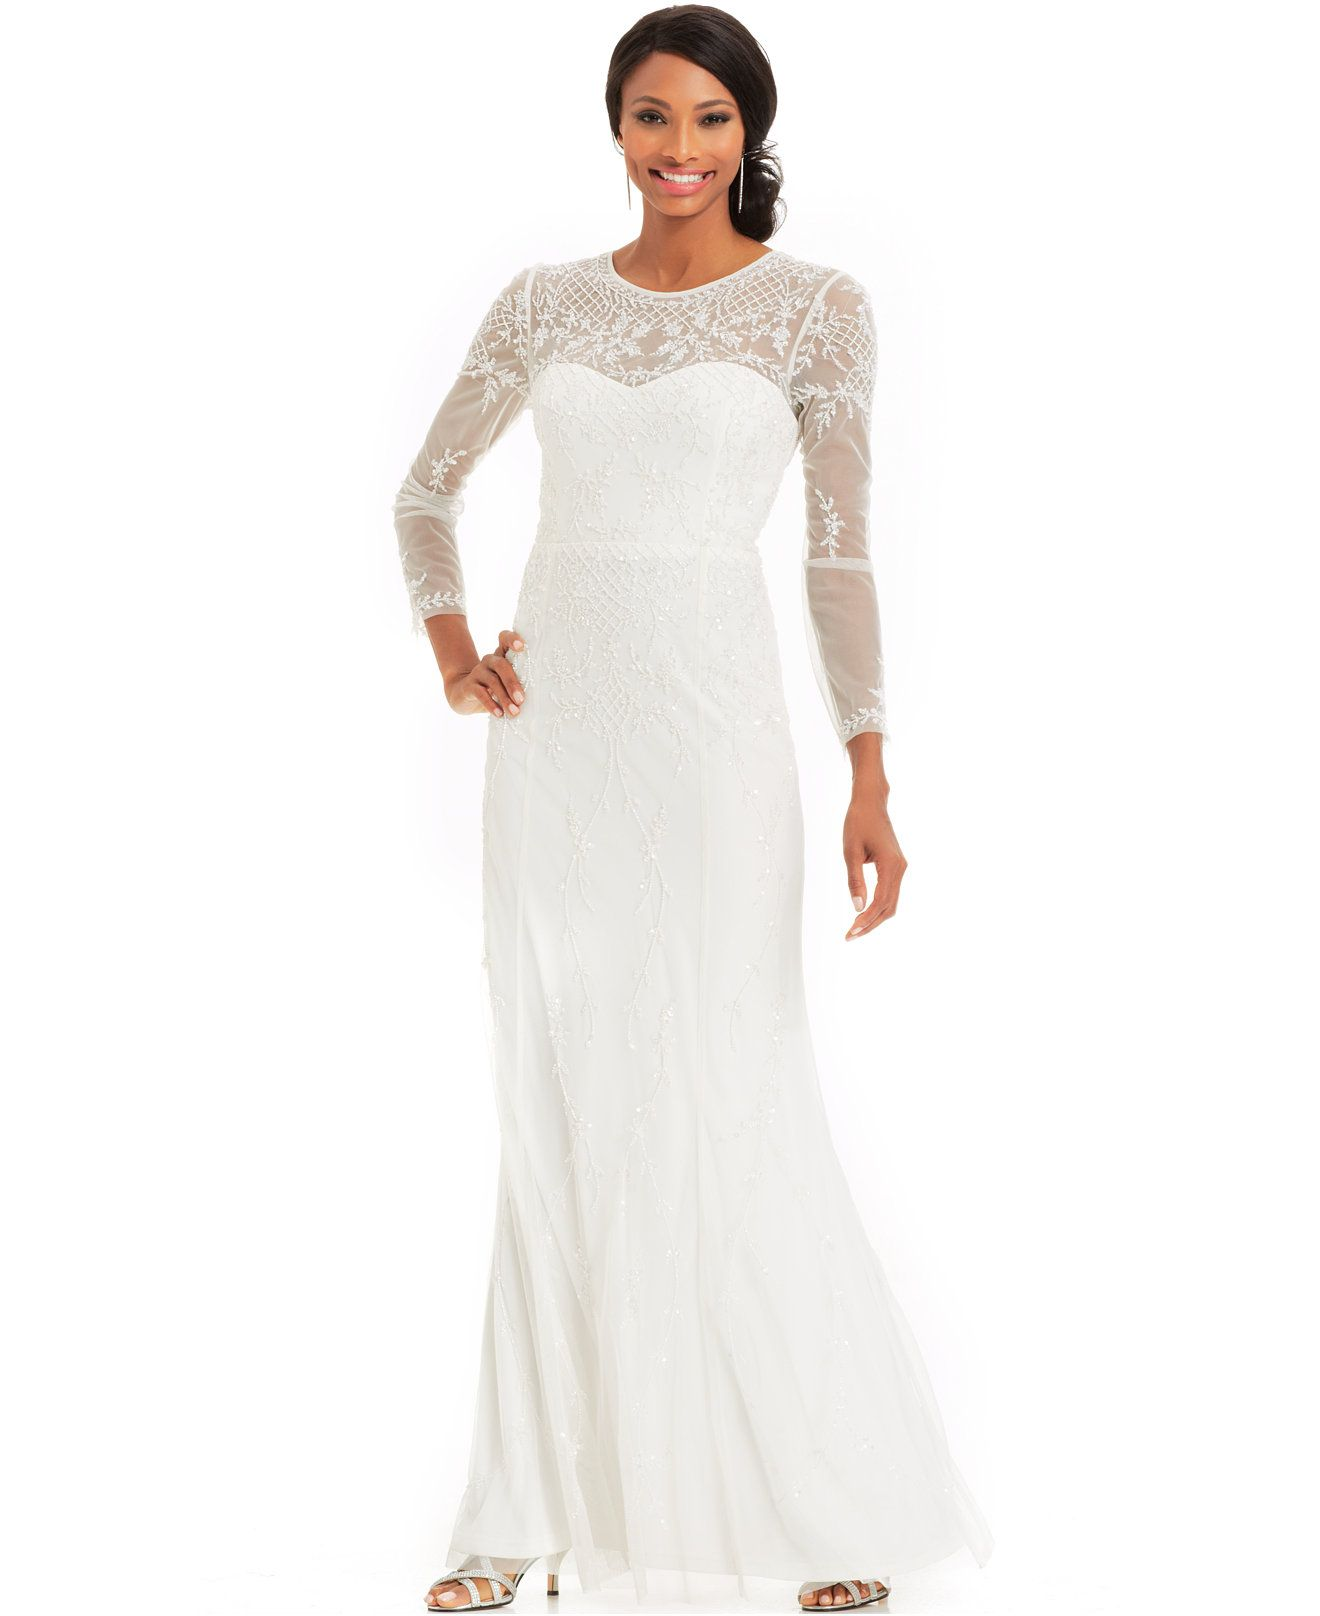 Macy S Wedding Day Dresses: $279 Adrianna Papell Long-Sleeve Beaded Illusion Gown